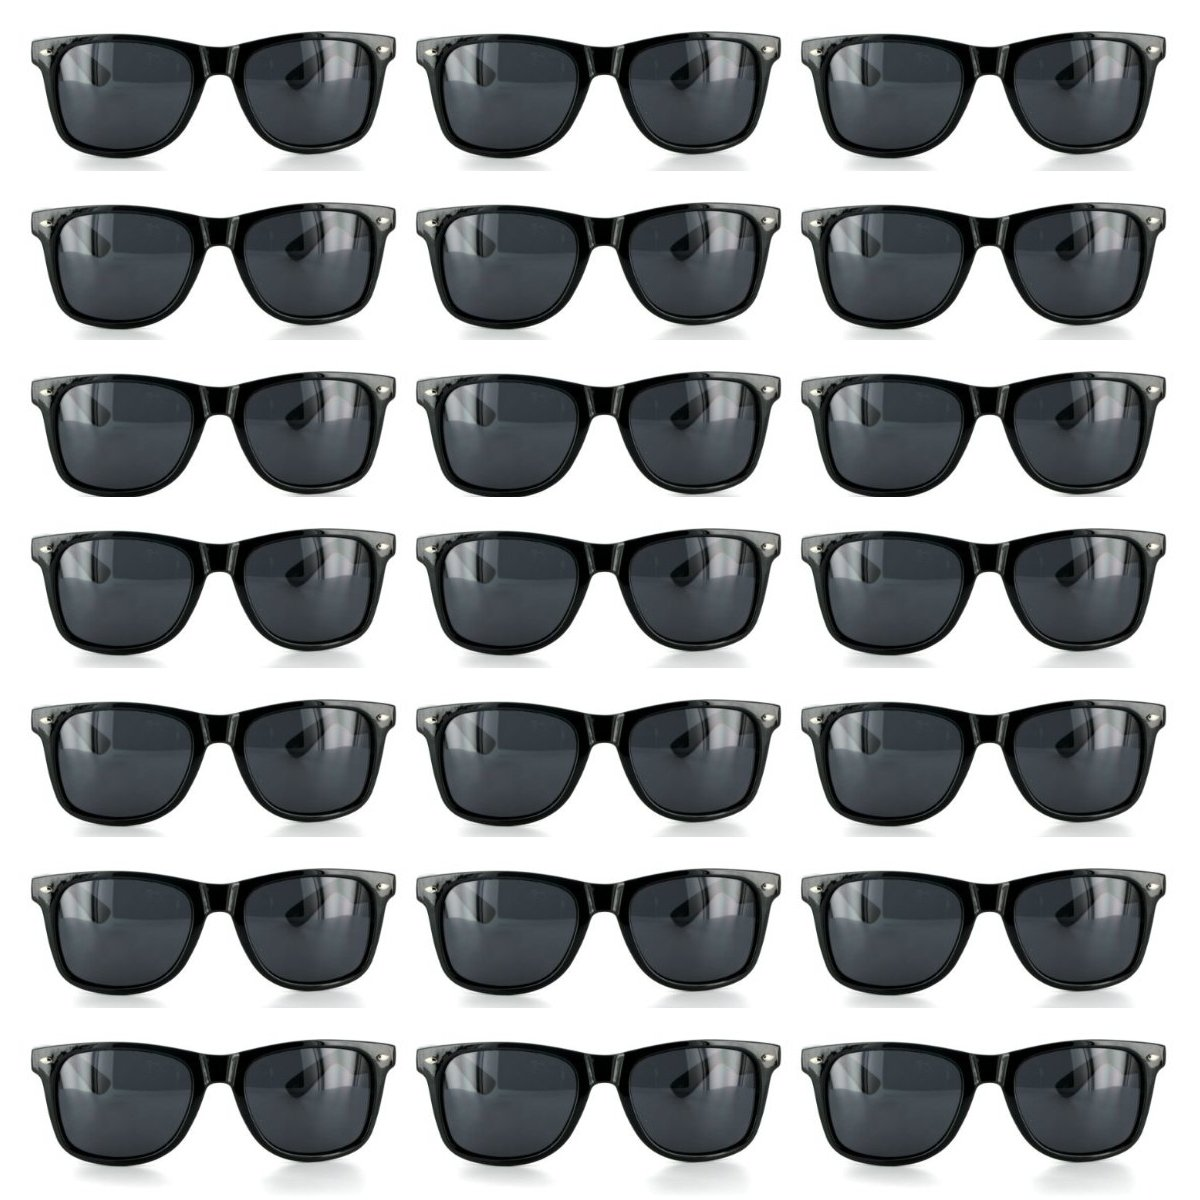 Wholesale Lot of 120 Black Sunglasses Retro Horned Rim Frame Party Favors (Black, Black) by MJ EYEWEAR